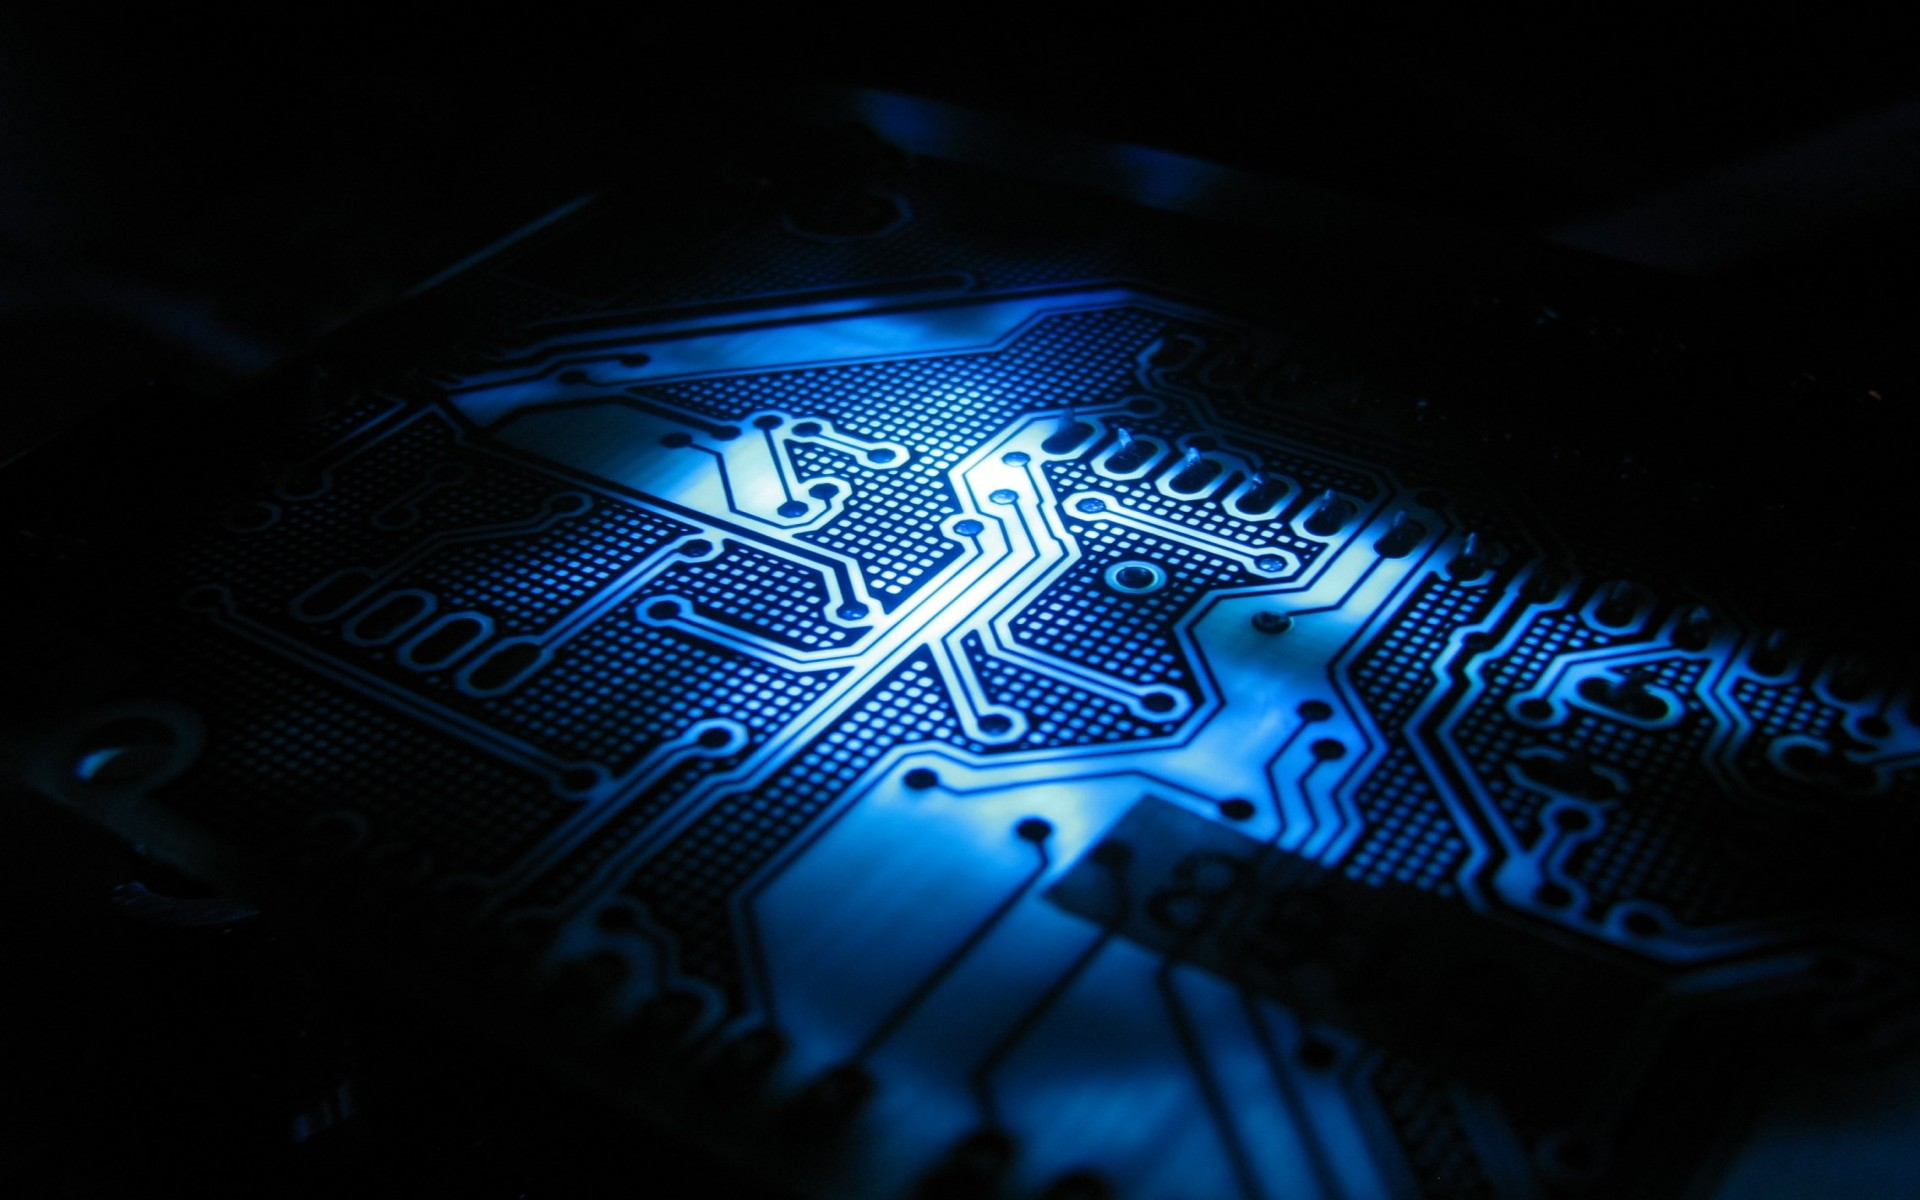 circuit board Electronic Devices tech blue abstract line metal detail  wallpaper